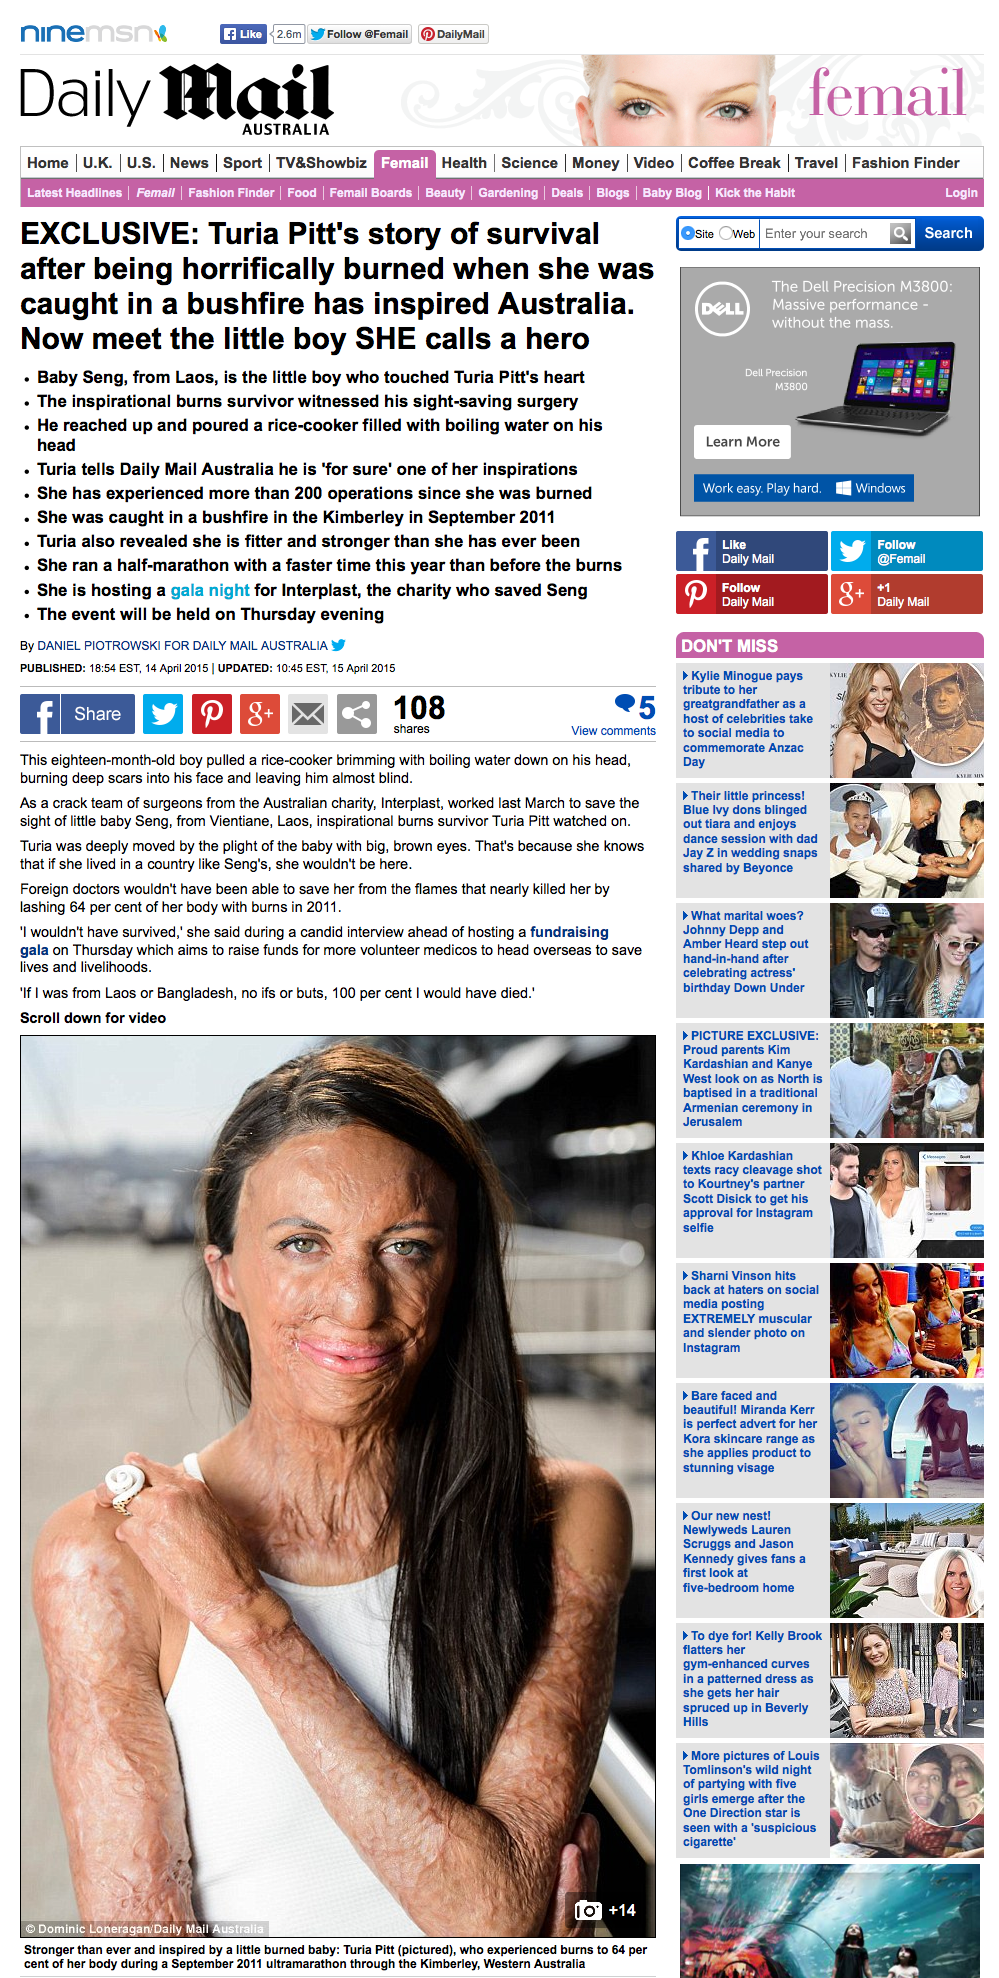 20150424_Burn_survivor_Turia_Pitt_meets_Laos_boy_SHE_calls_a_hero_Daily_Mail_Online_-_2015-04-25_11.37.41.png